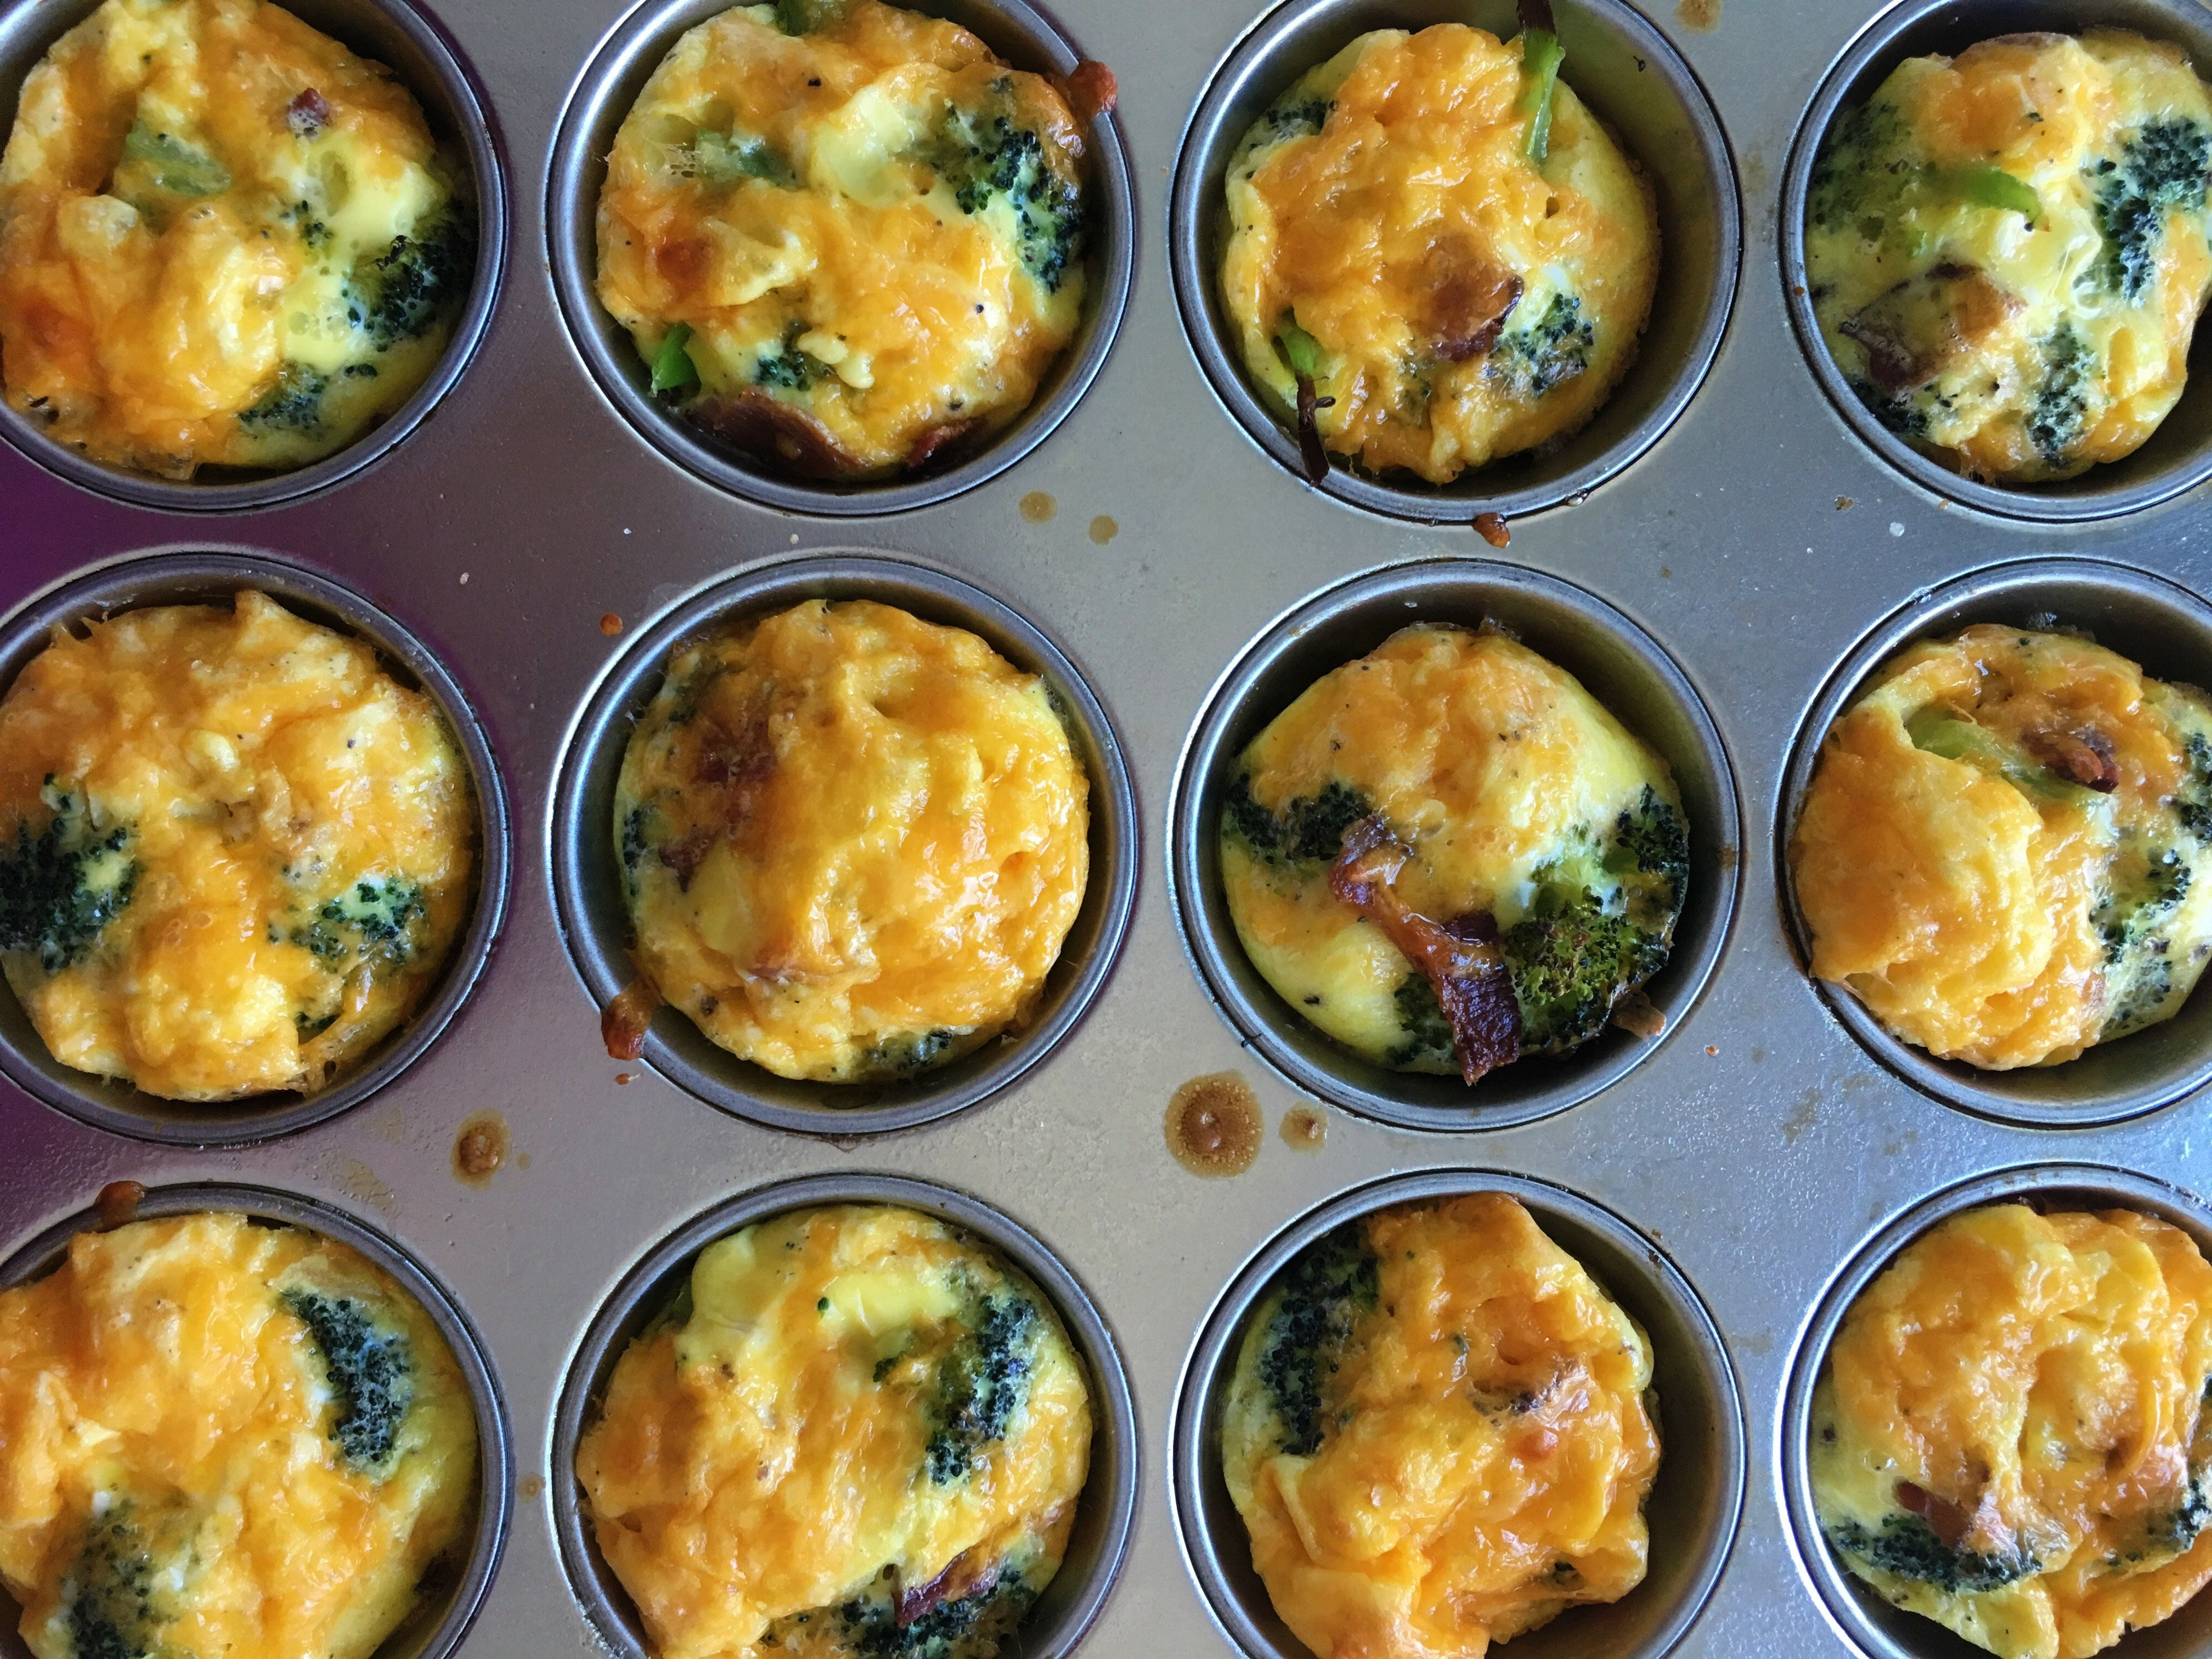 Here's an easy make-ahead breakfast that'll have you set for the week. You get two mini frittatas per serving for only 168 calories; pair... #baconfrittata